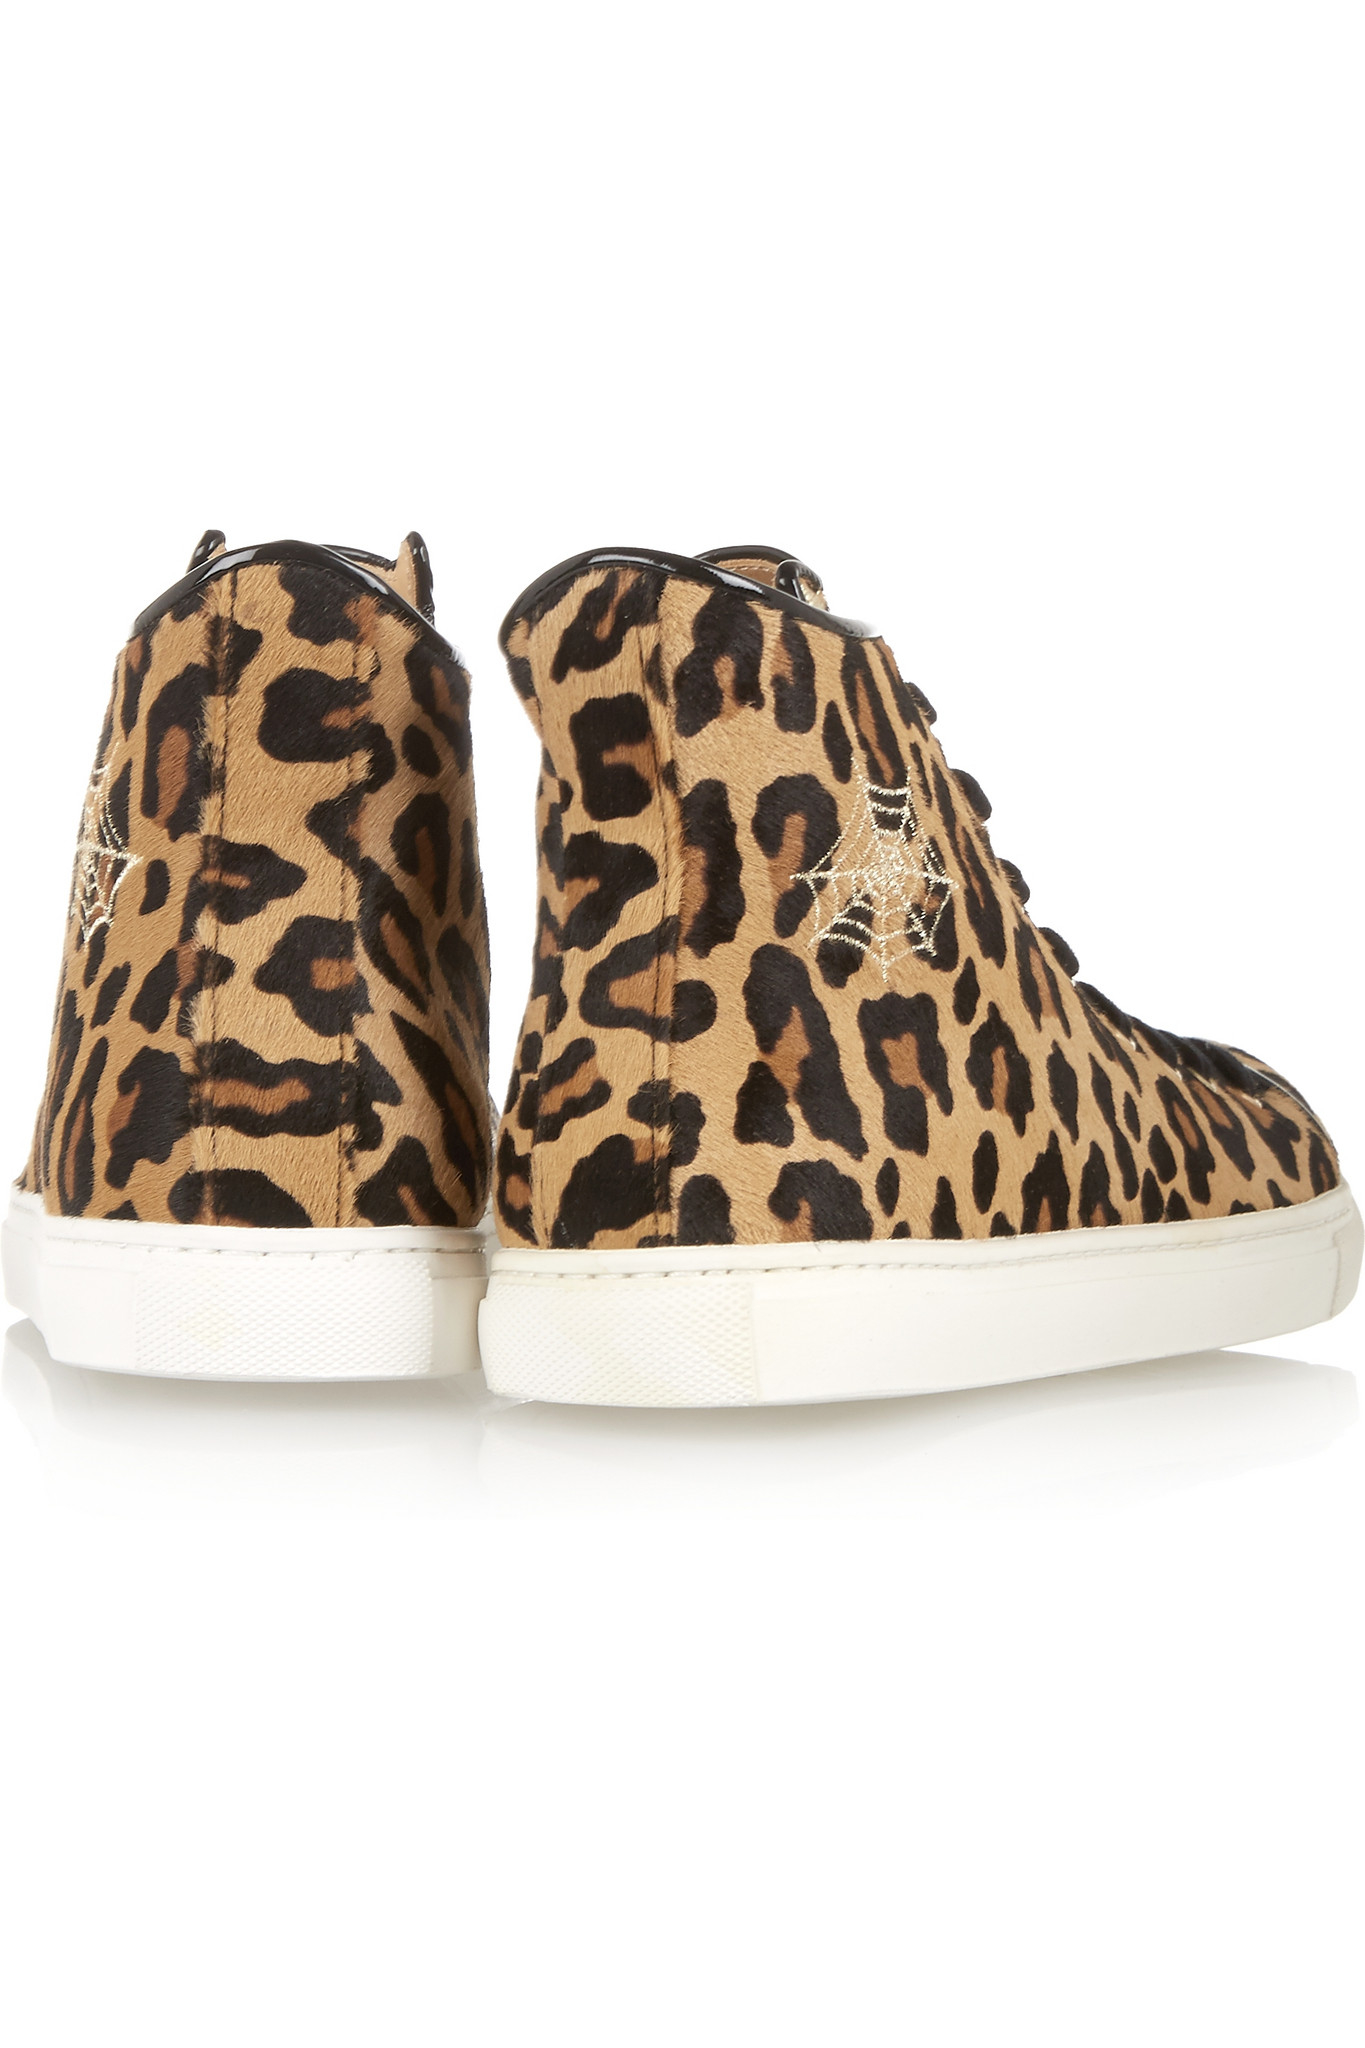 Charlotte Olympia Purrrfect Leopard-print Calf Hair High-top Sneakers